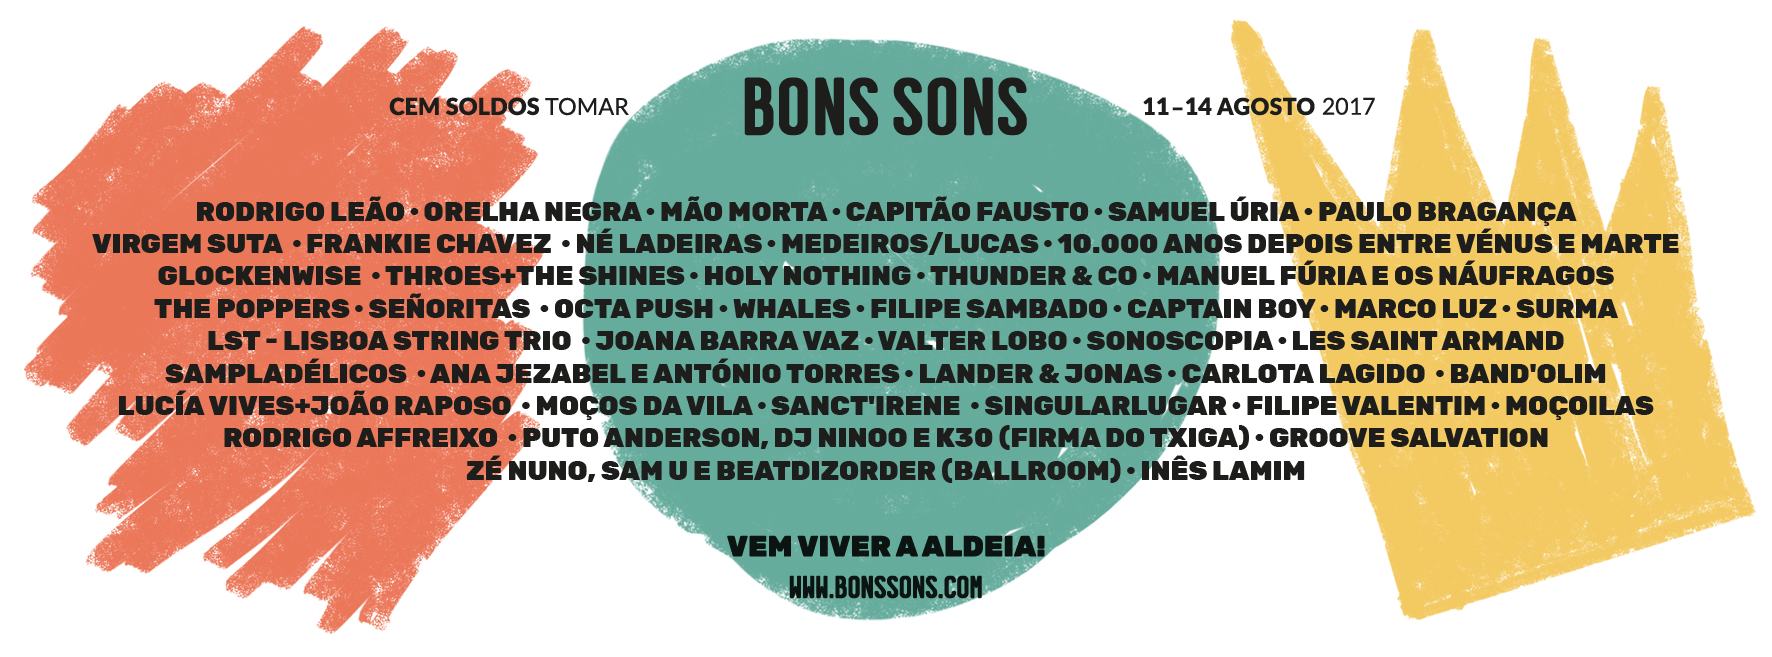 Cartaz Festival Bons Sons 2017